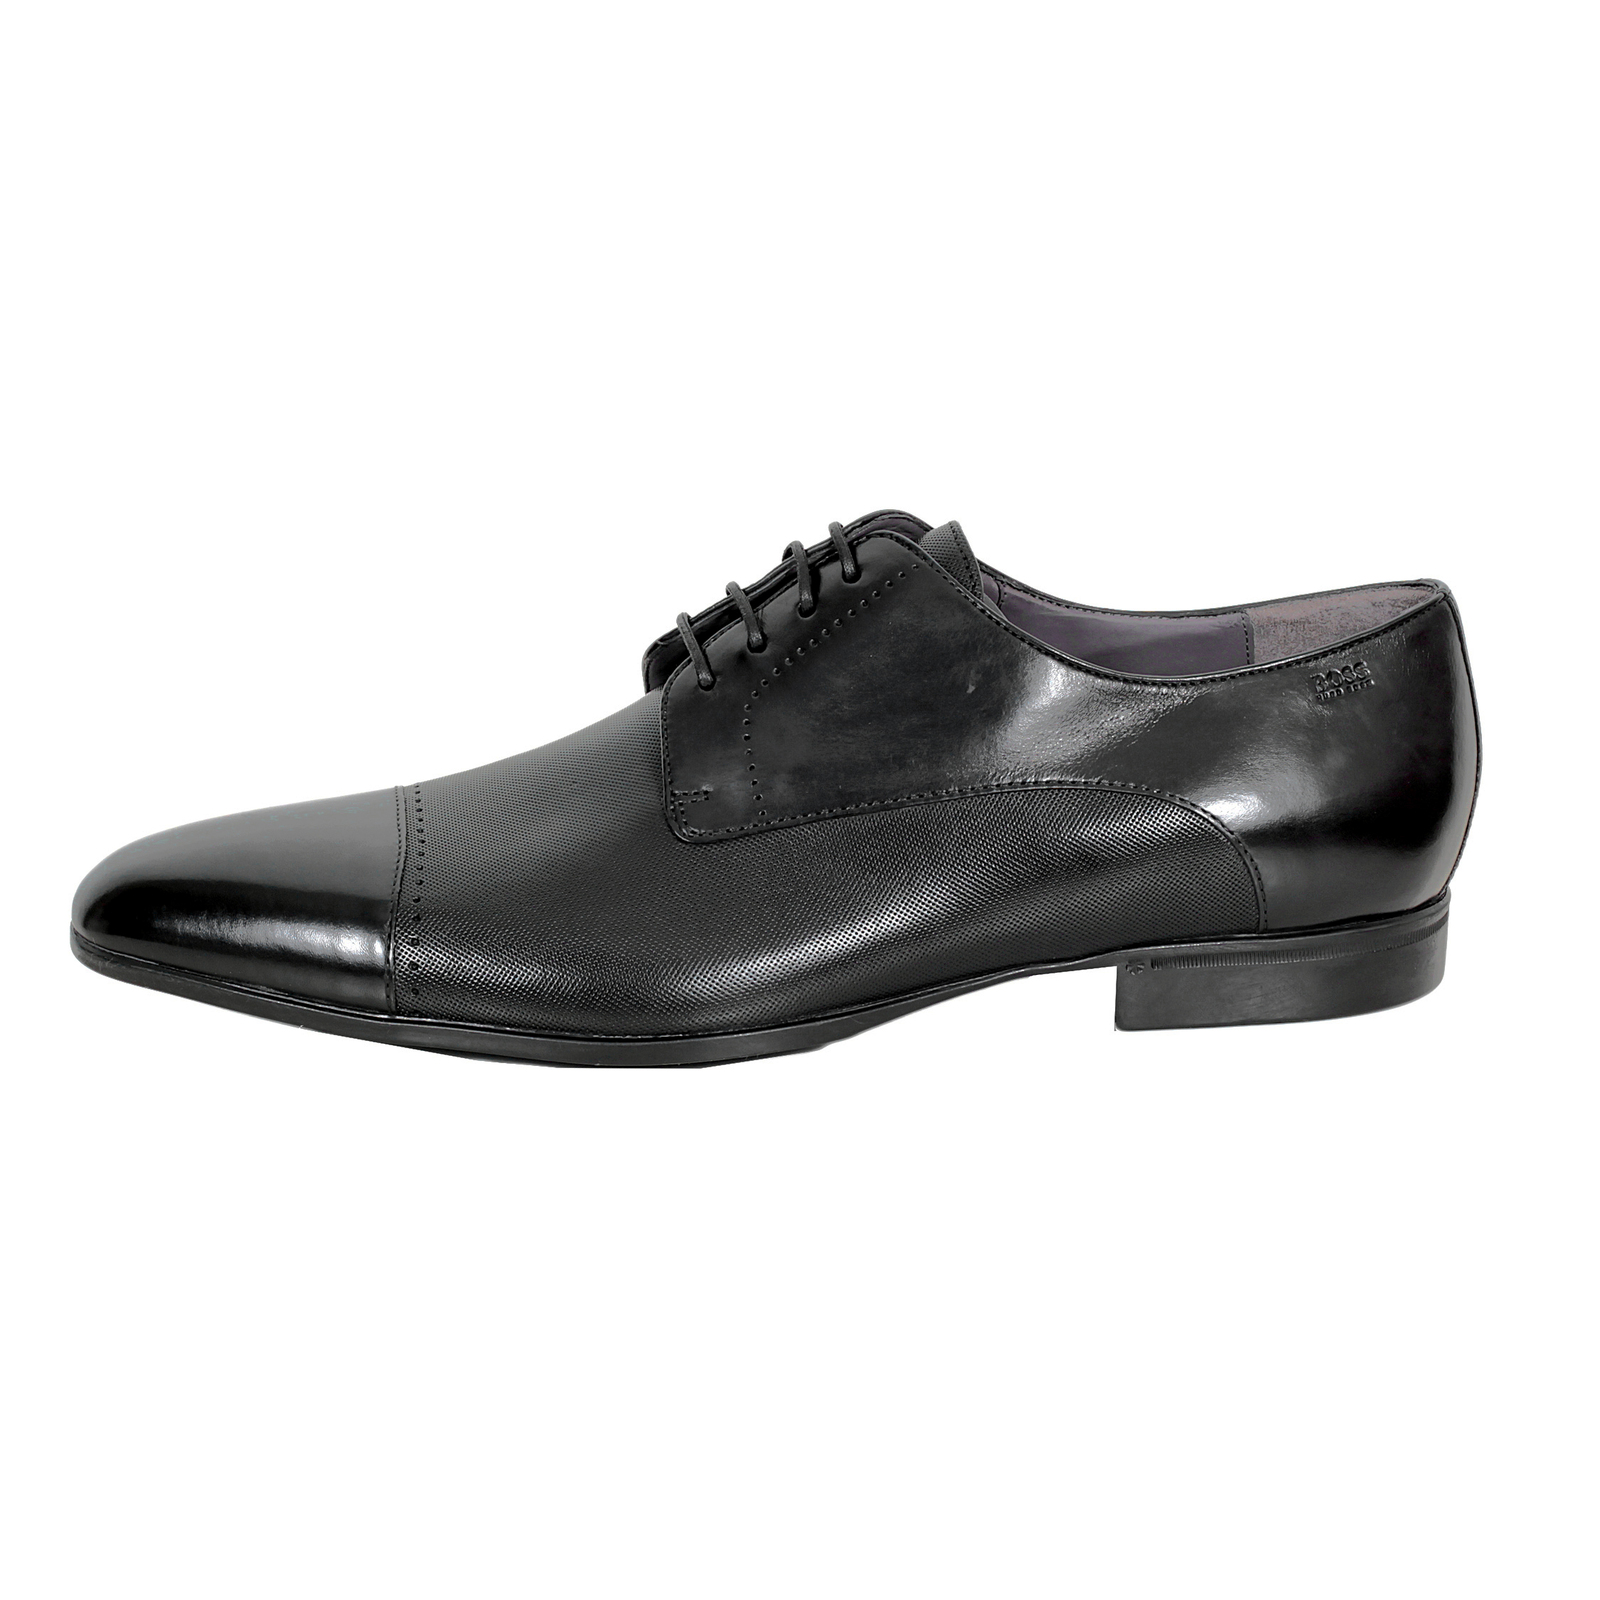 Hugo Boss Sneakers Hugo Boss Shoes Neverf Black Leather Toe Cap Dress Shoes